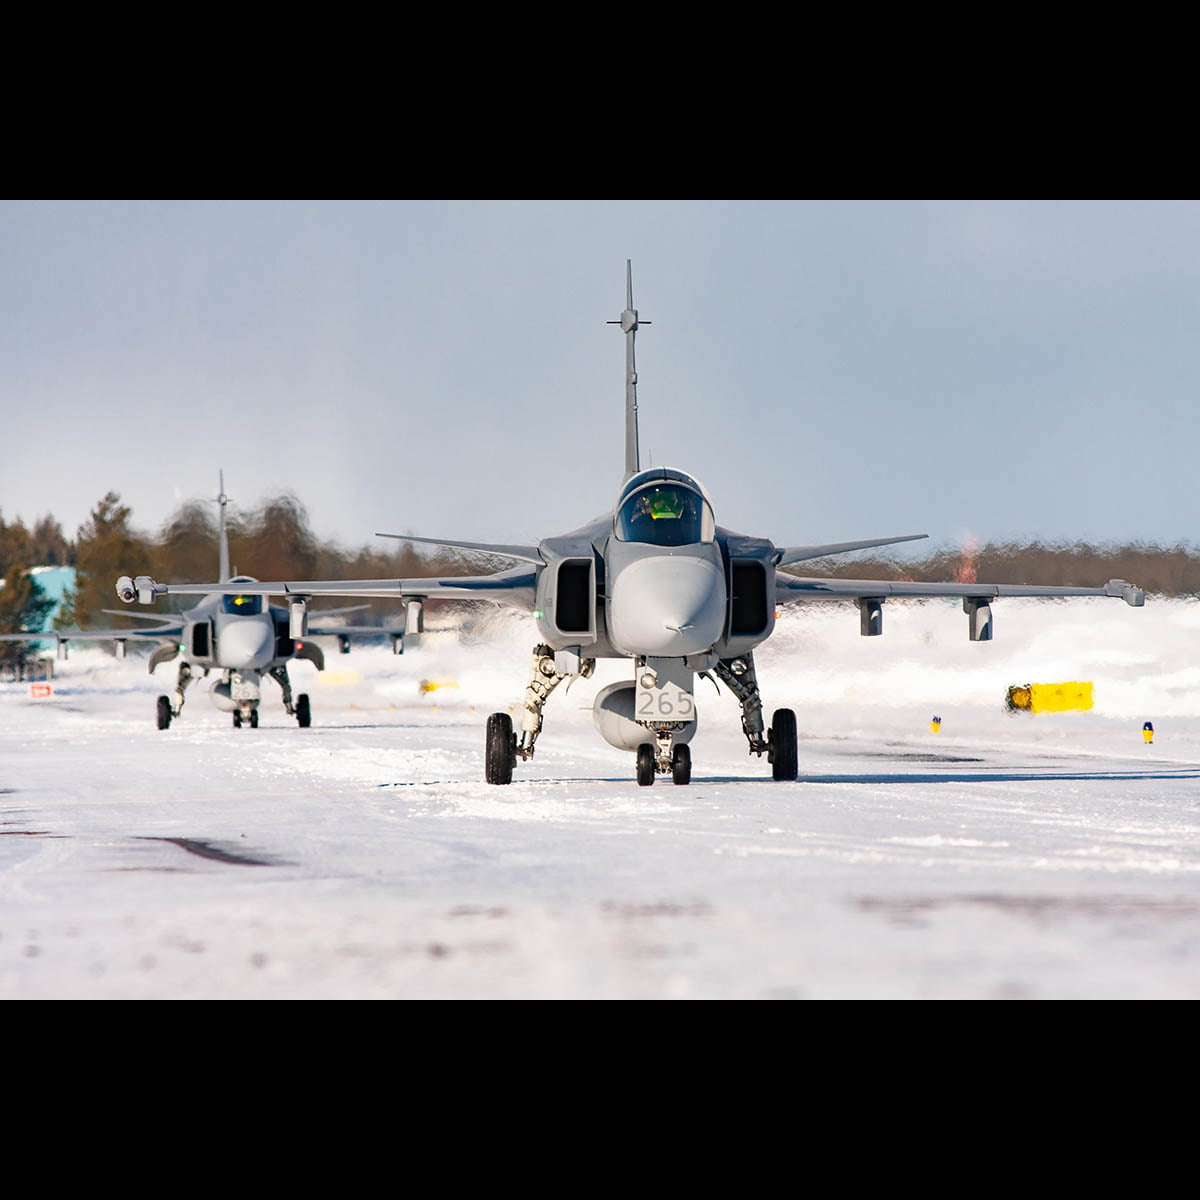 Swedish Air Force Gripens taxiing out in the snow